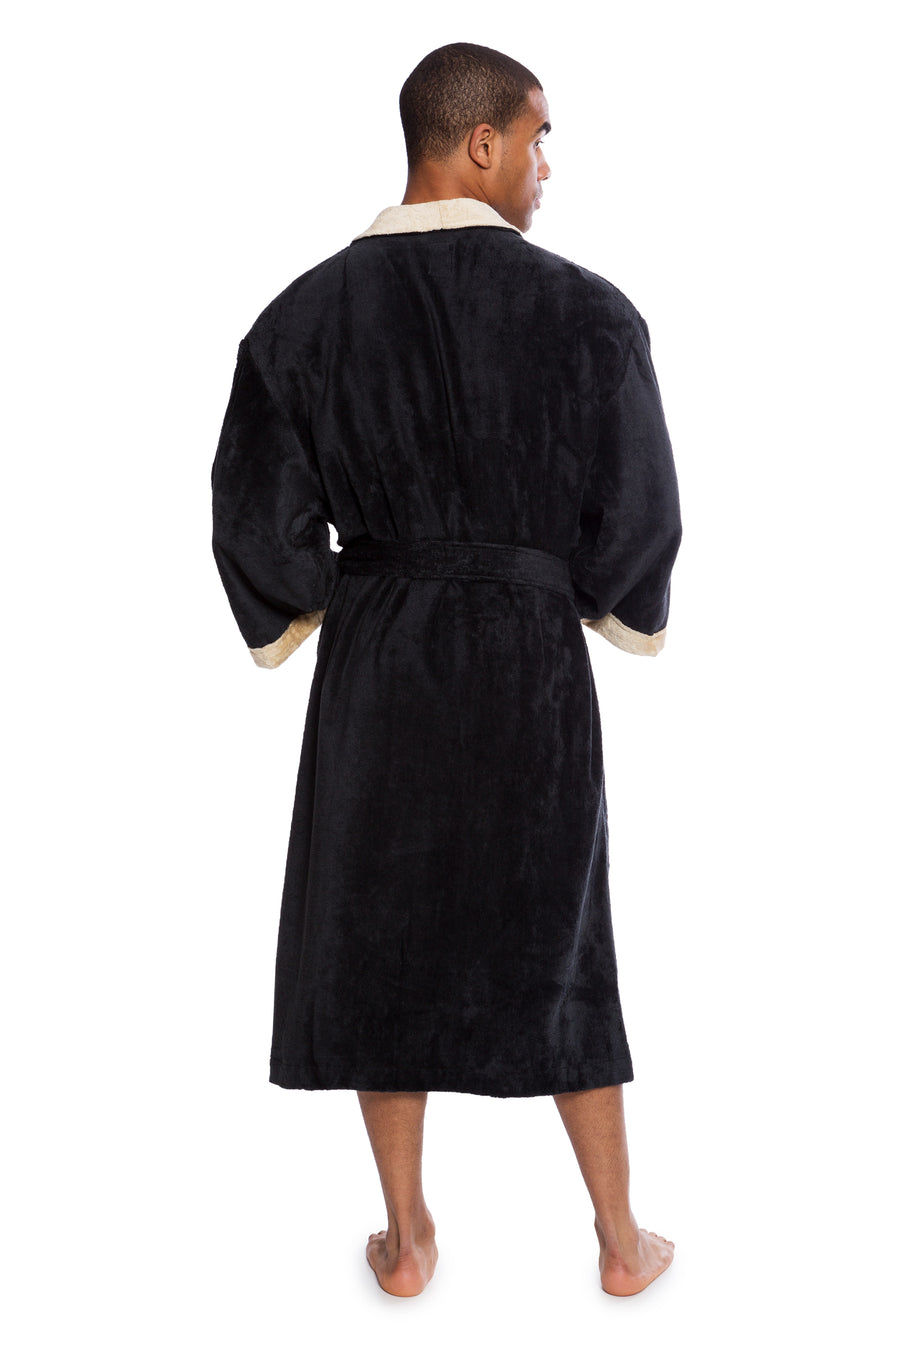 Turilano - Men's Bamboo Velvet Terry Bathrobe - Clearance - TexereSilk